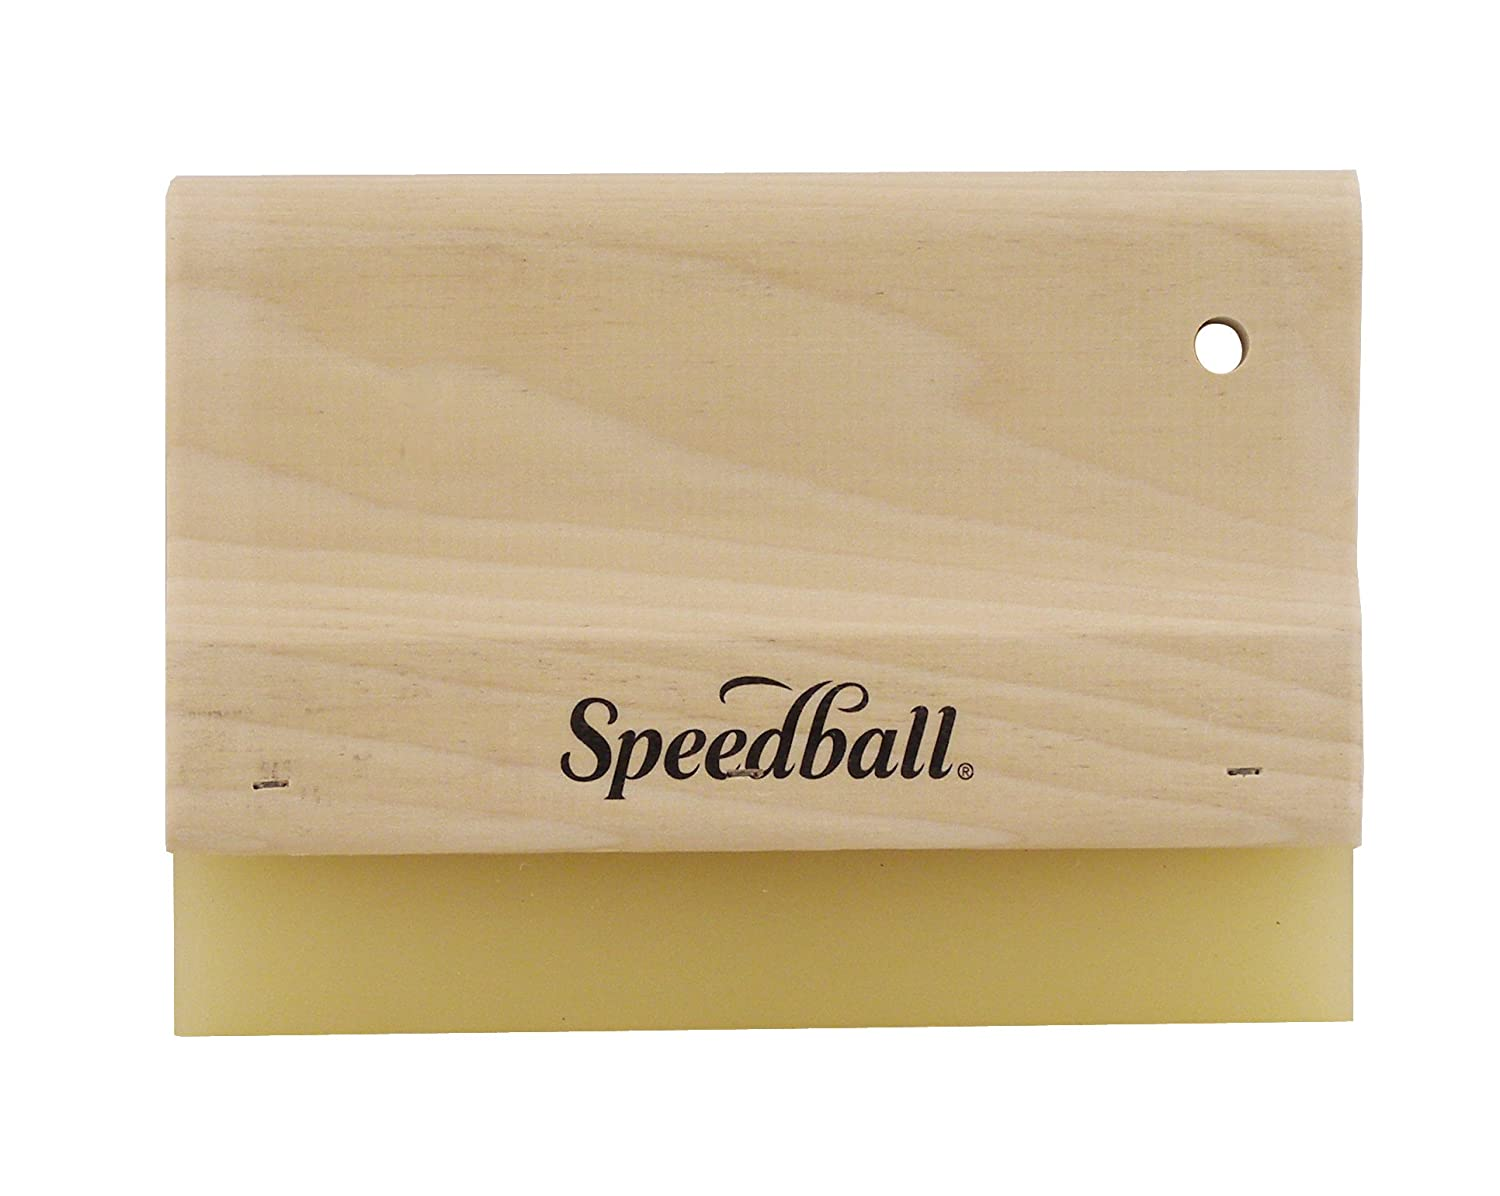 Speedball 8-Inch Graphic Squeegee for Screen Printing 4481